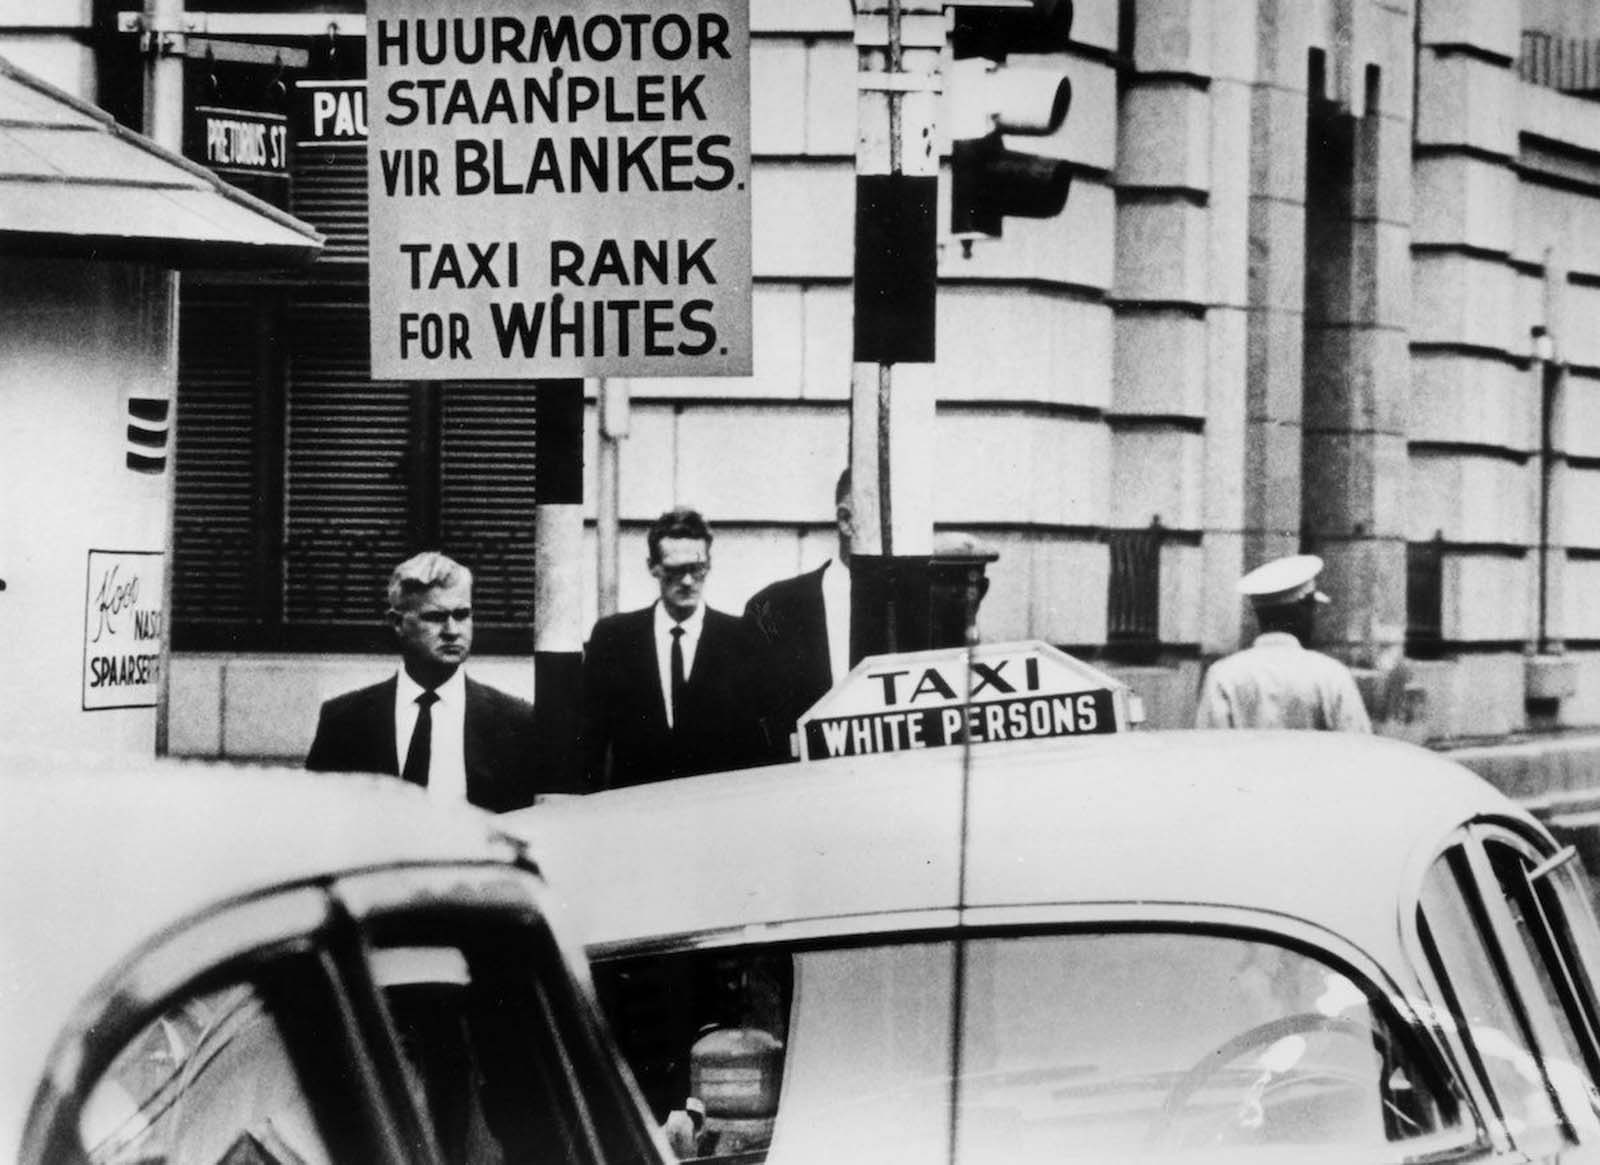 A Taxi rank for white people. 1967.